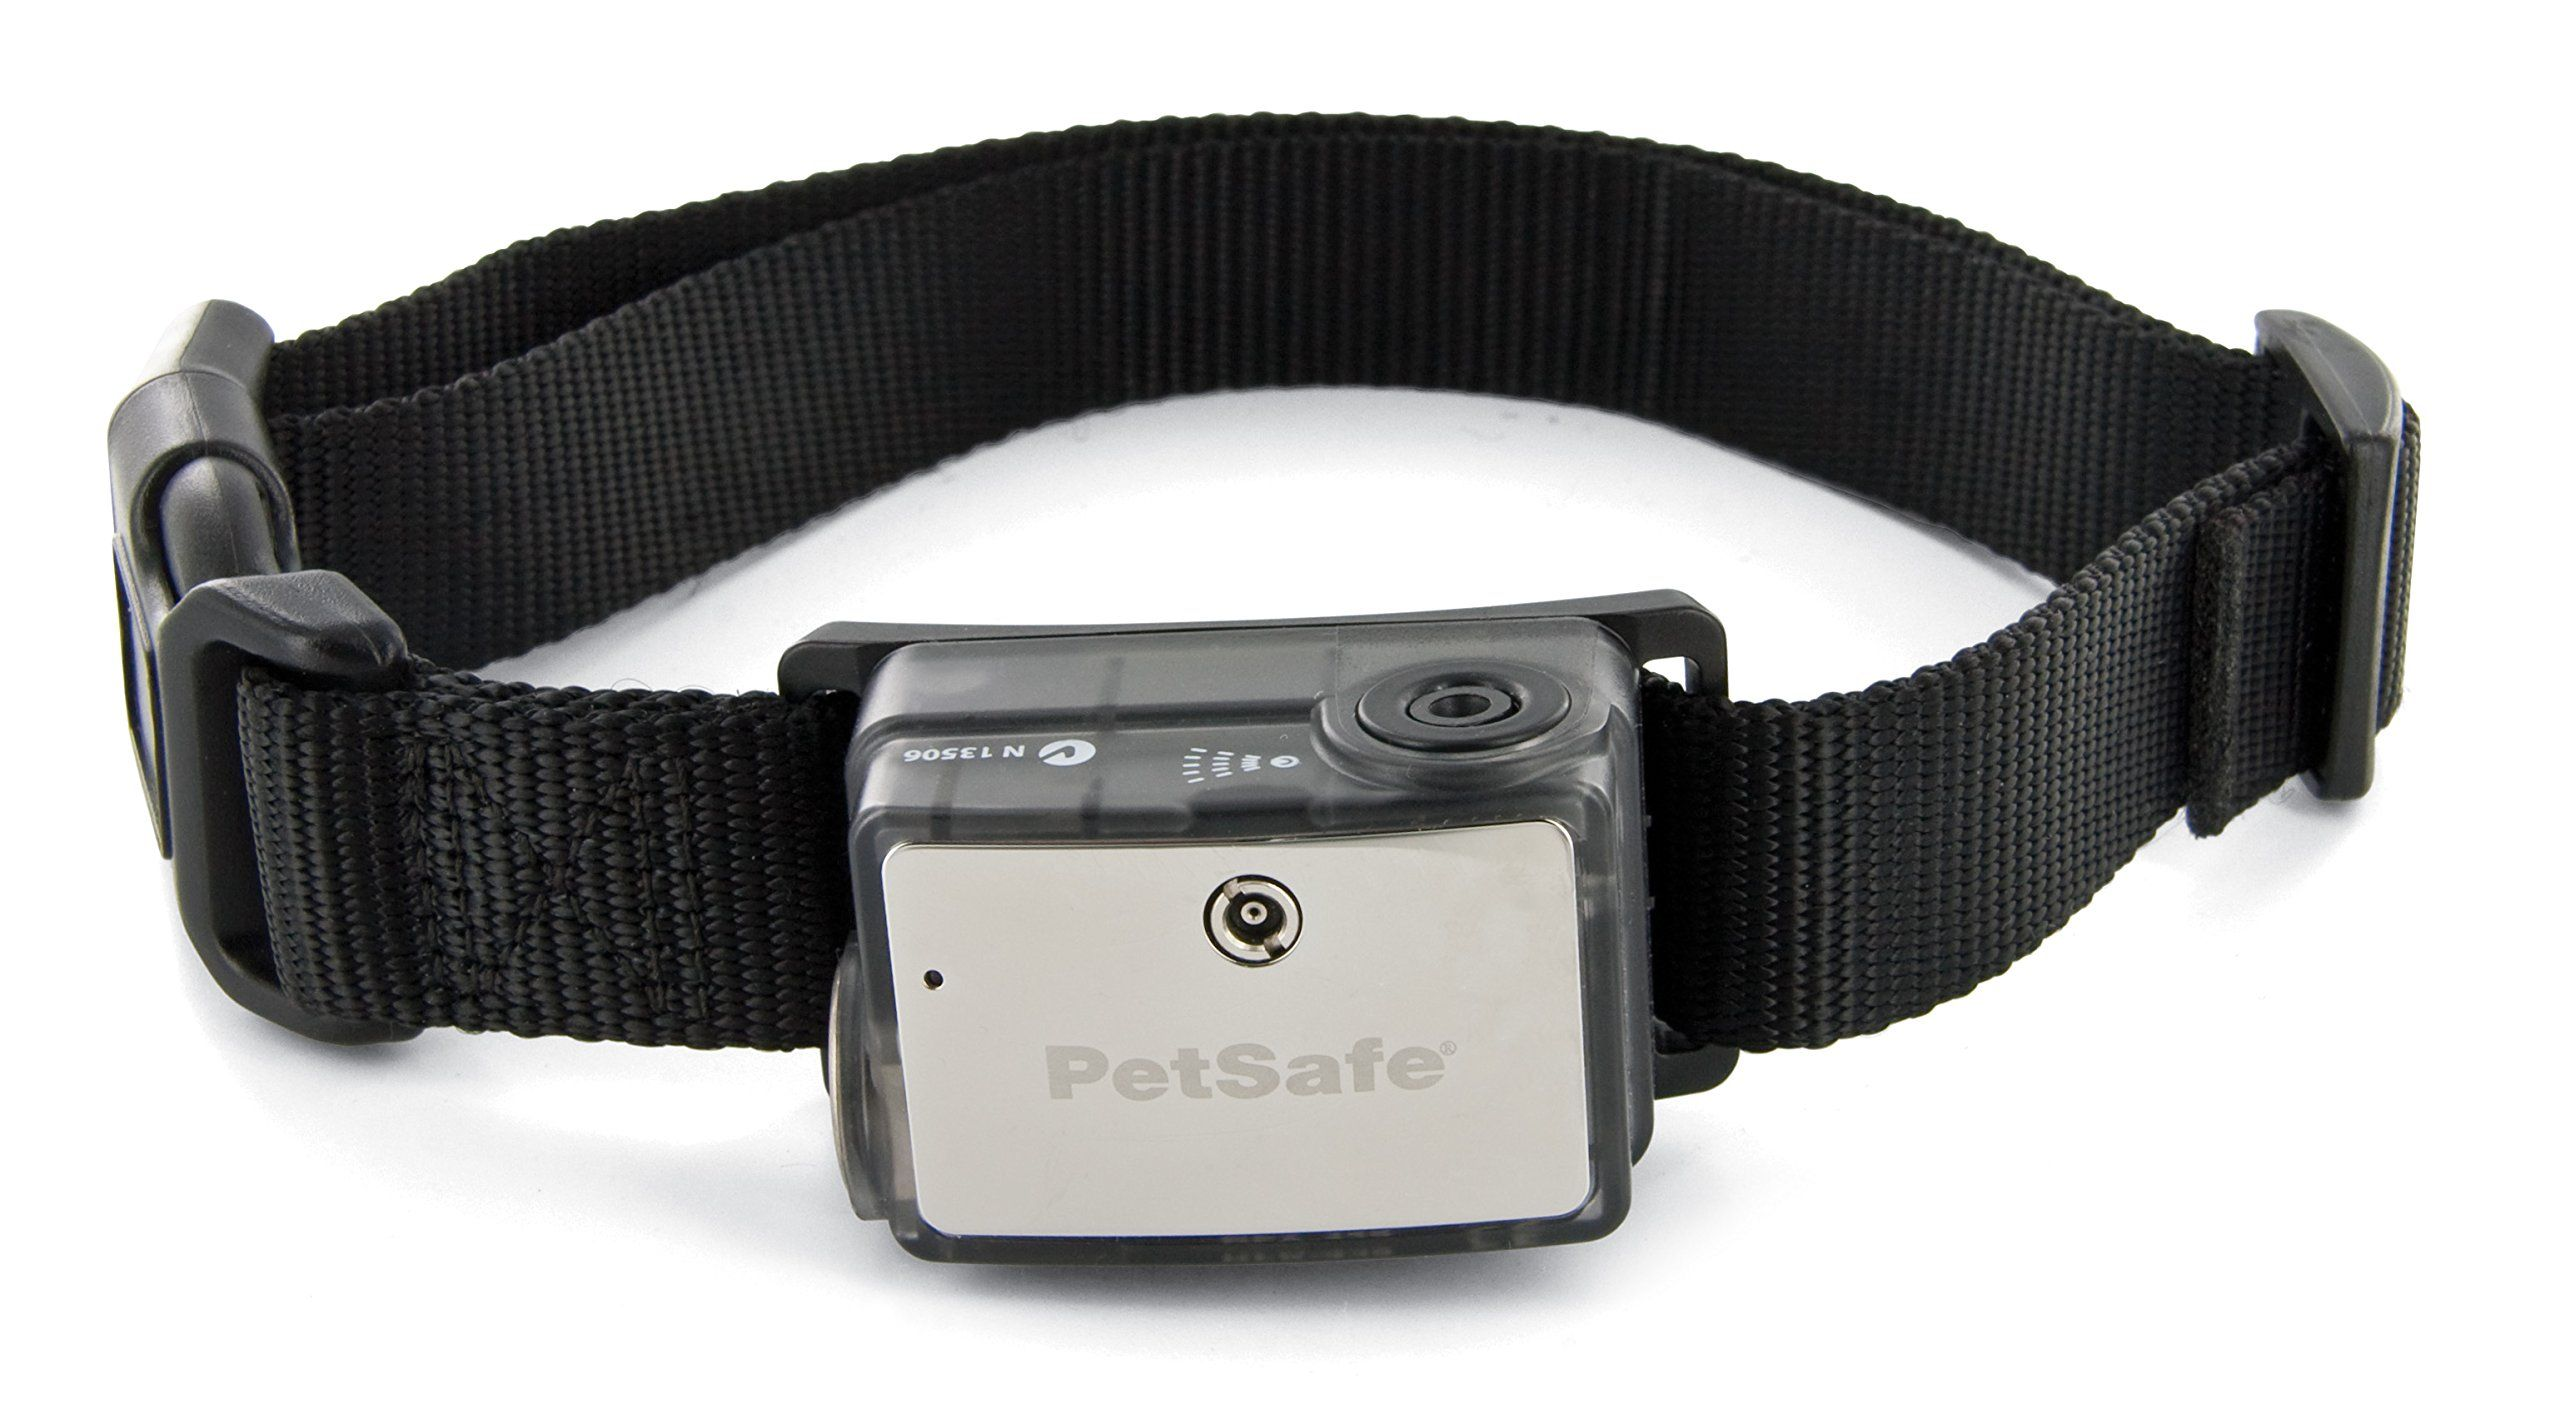 Sparky Petco 34 Rollerbuckle Hi Flex Reflective Strap For Dogtra Petsafe Sportdog E Collar Garmin Refl Reflective Collars Dog Training Pads Dog Training Collar